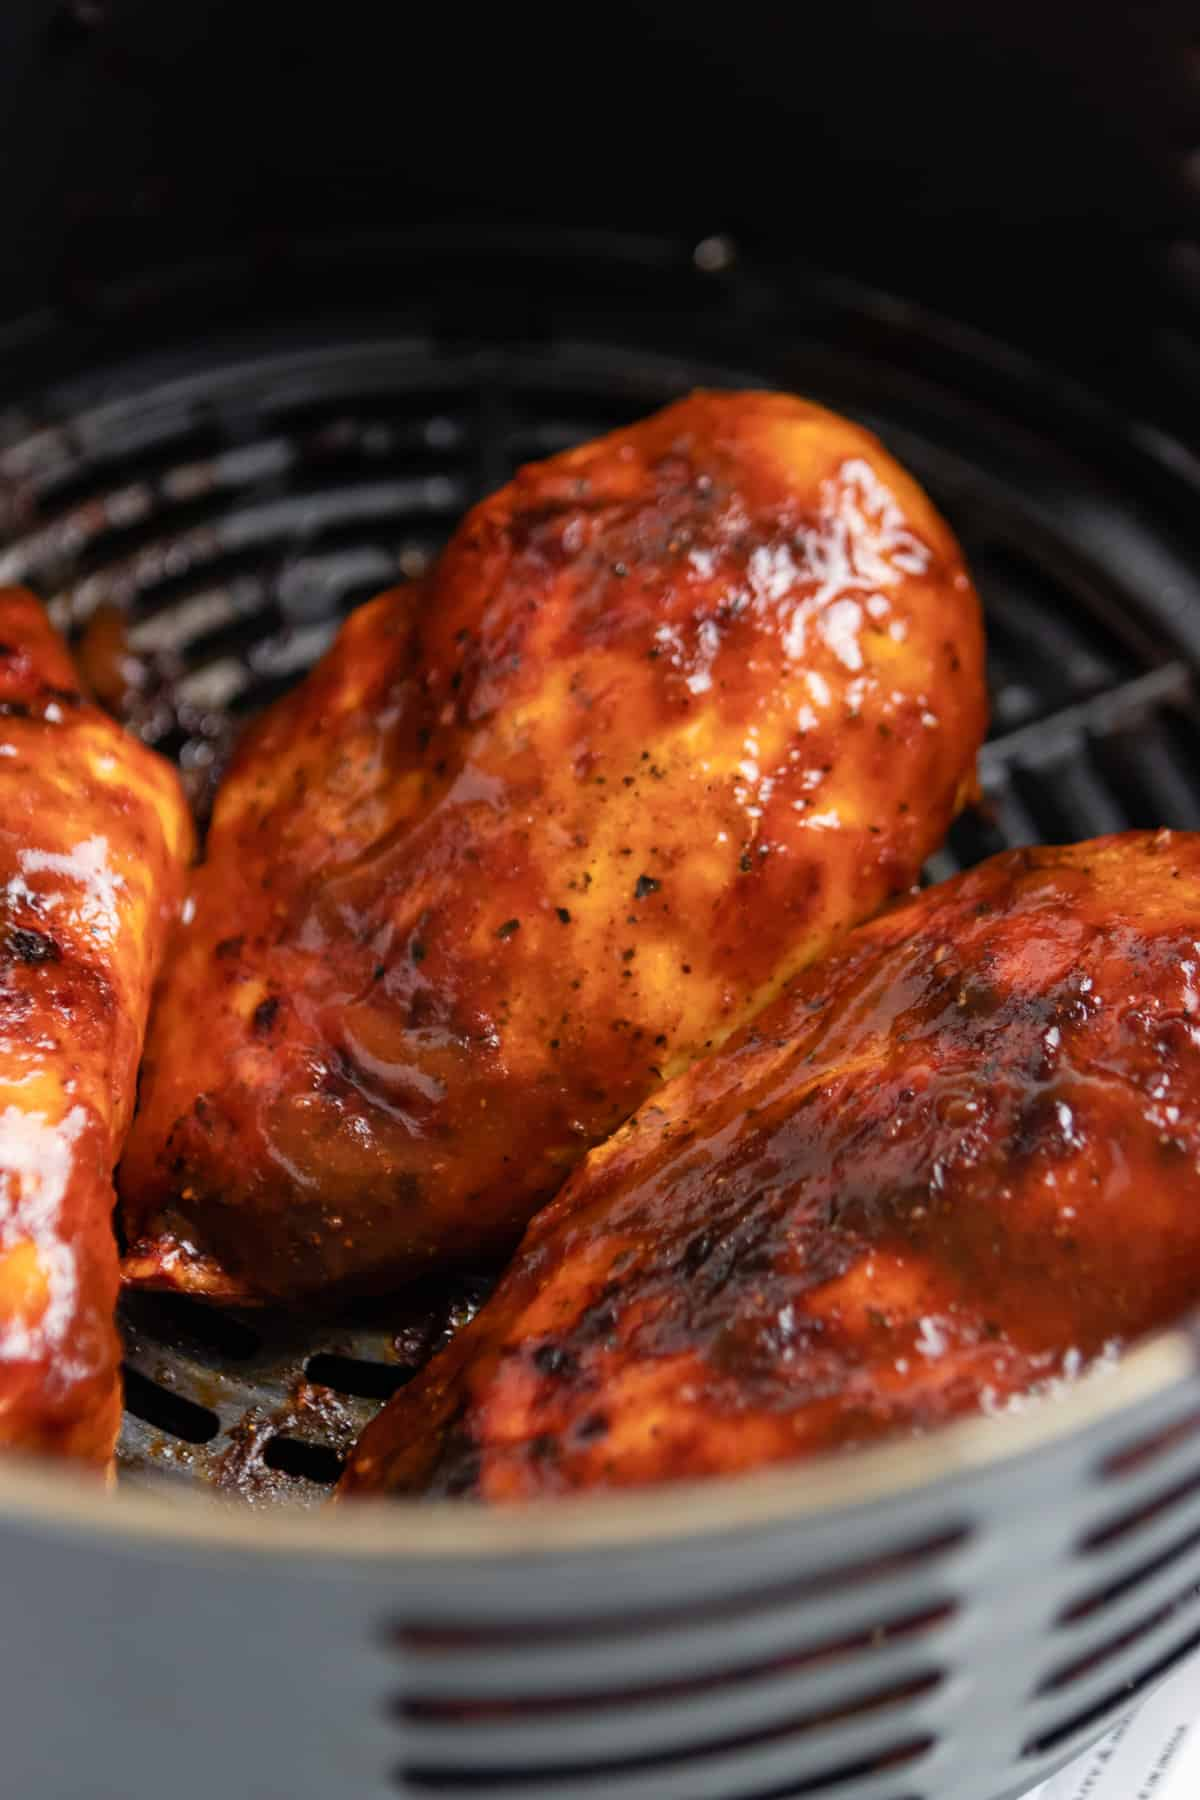 BBQ sauce on chicken in air fryer.